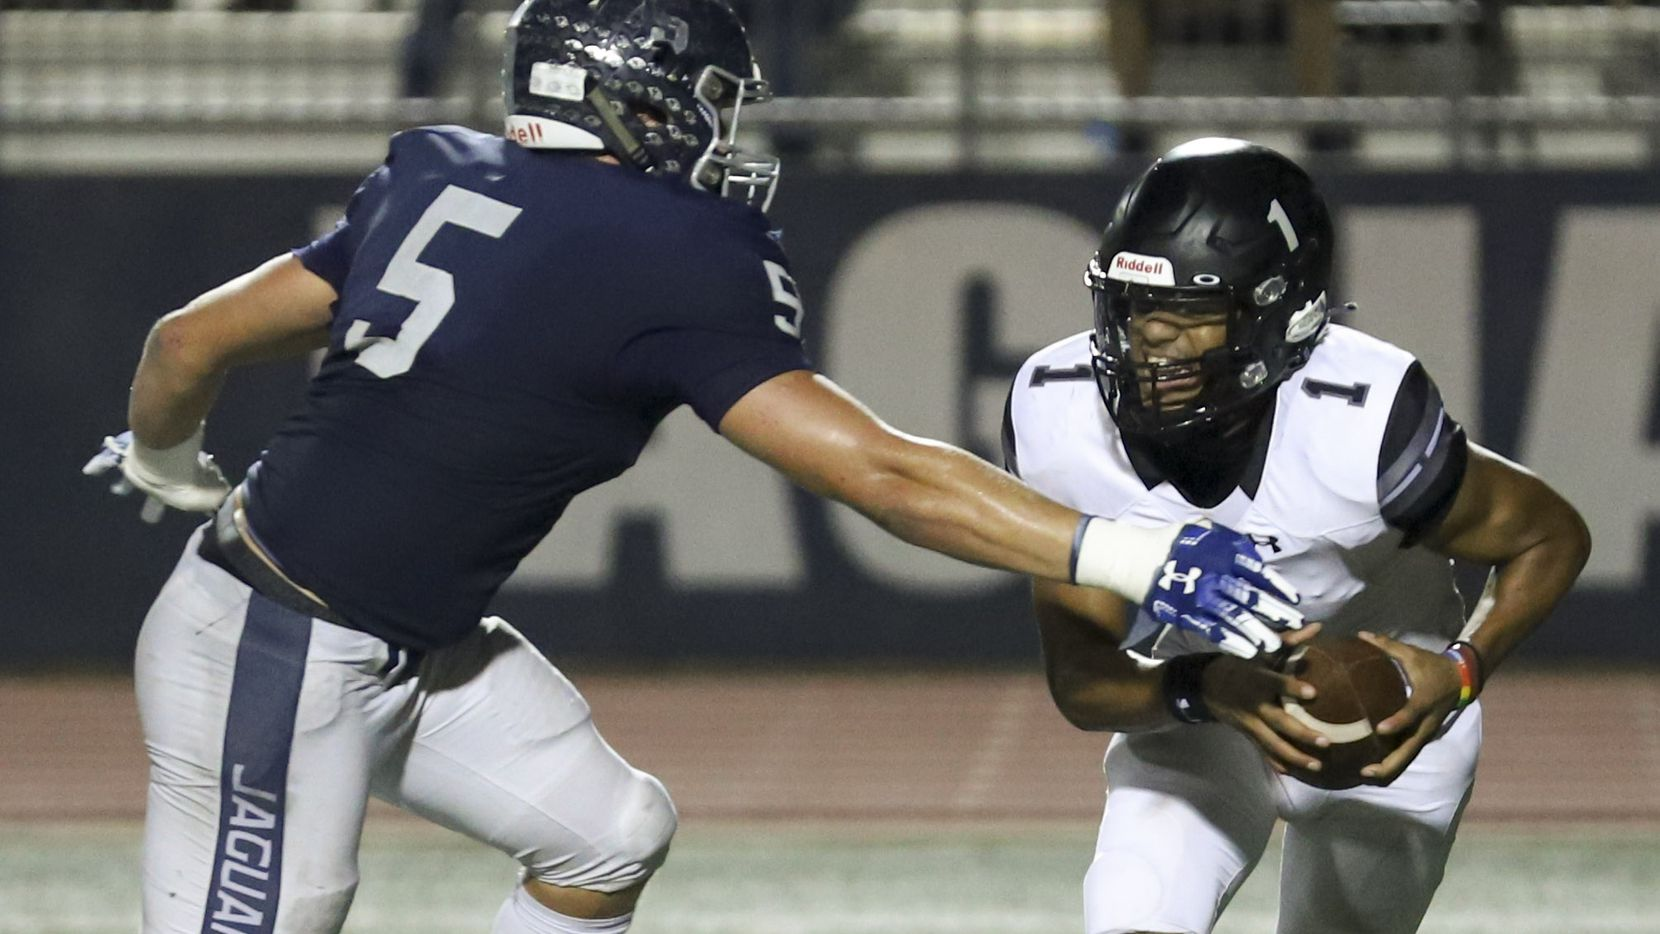 Flower Mound defensive end Stone Eby (5) sacks Mansfield Timberview quarterback Simeon Evans (1) during the second half at Neal E. Wilson Stadium in Flower Mound, Friday, October 9, 2020.